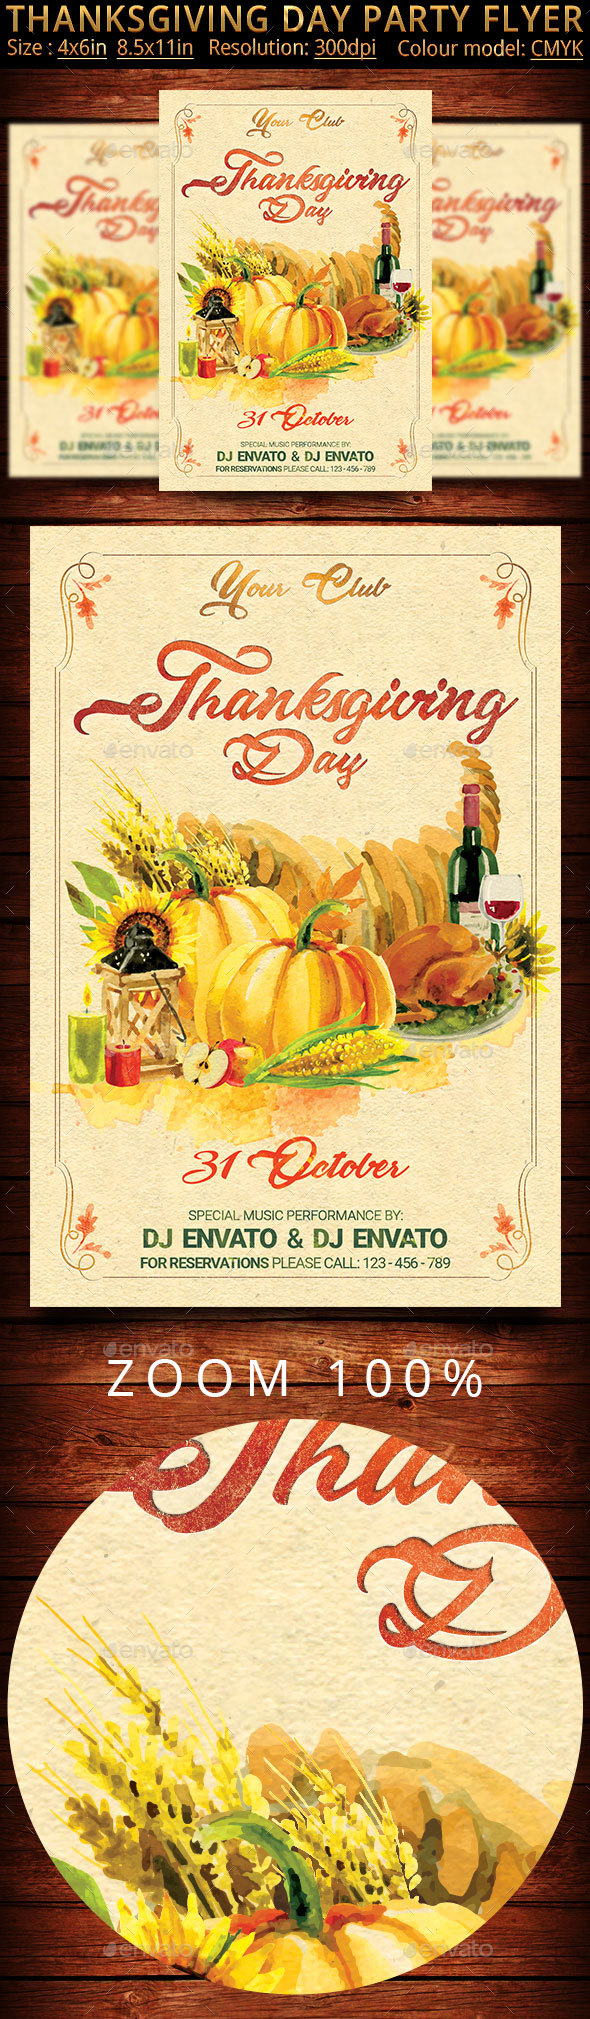 Thanksgiving Day Vintage Party Flyer